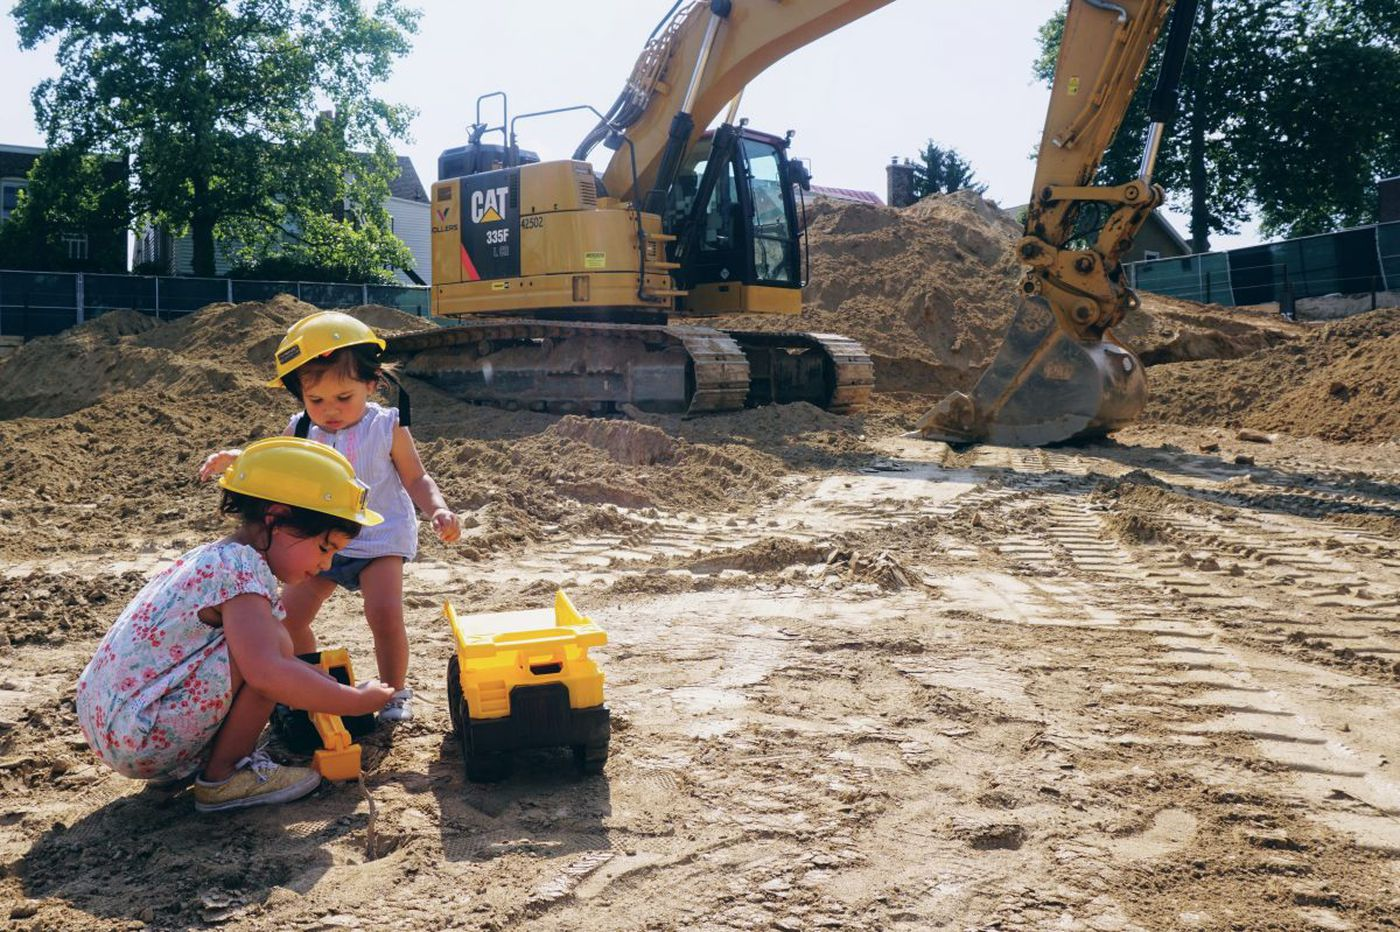 Developers try to ease Ardmore's construction woes with kid-friendly 'Big Dig' event